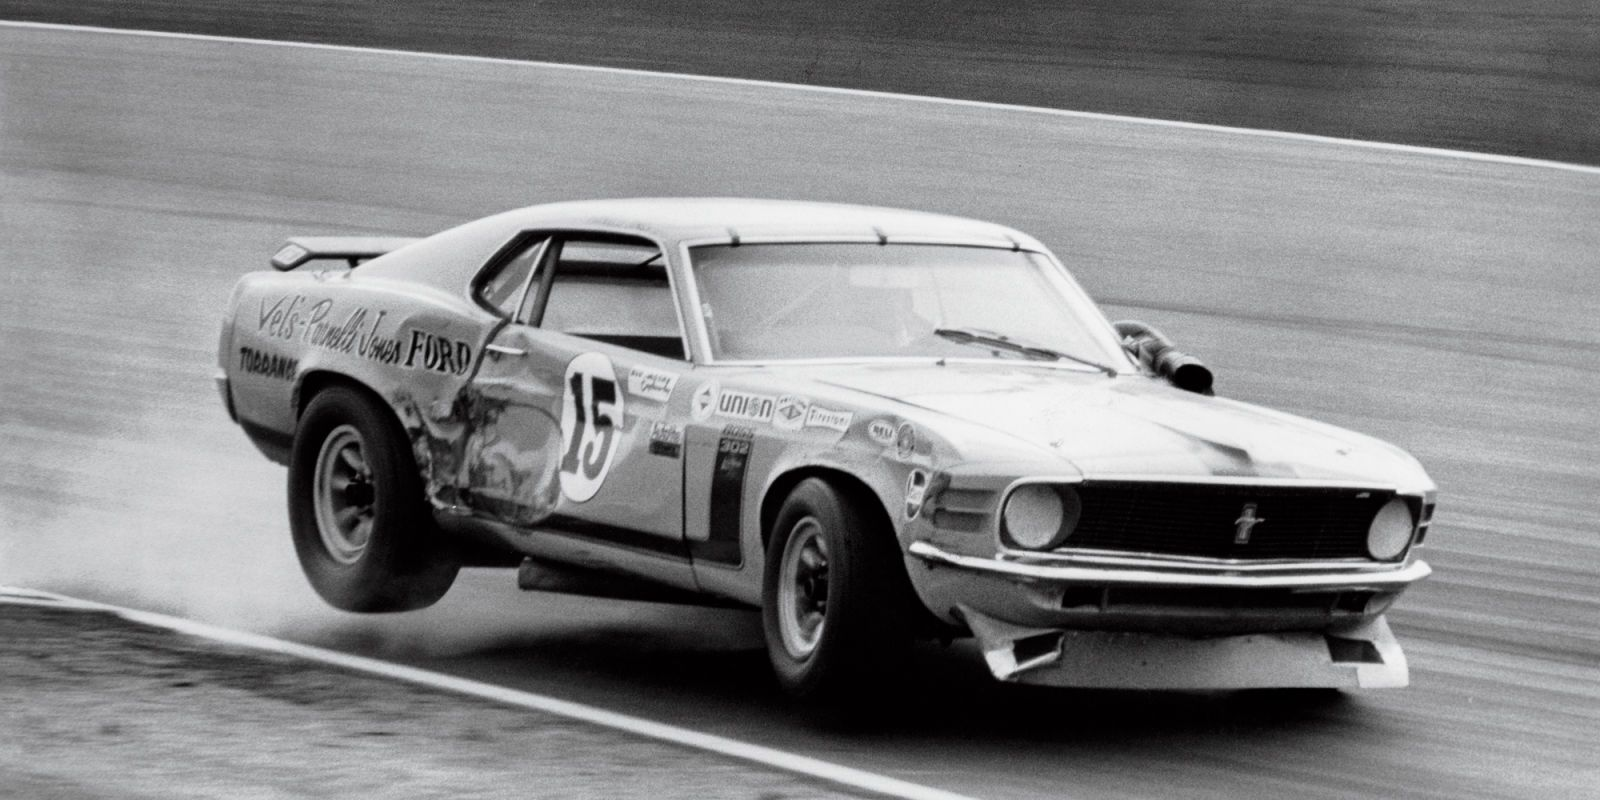 """A Look Into the Amazing Past of Trans-Am Racing - RoadandTrack.com"" : Parnelli Jones - Ford Mustang Boss 302 - Bud Moore Racing - Mission Bell 200 Riverside - Trans-Am Riverside - 1970 SCCA Trans-American Championship, round 11"